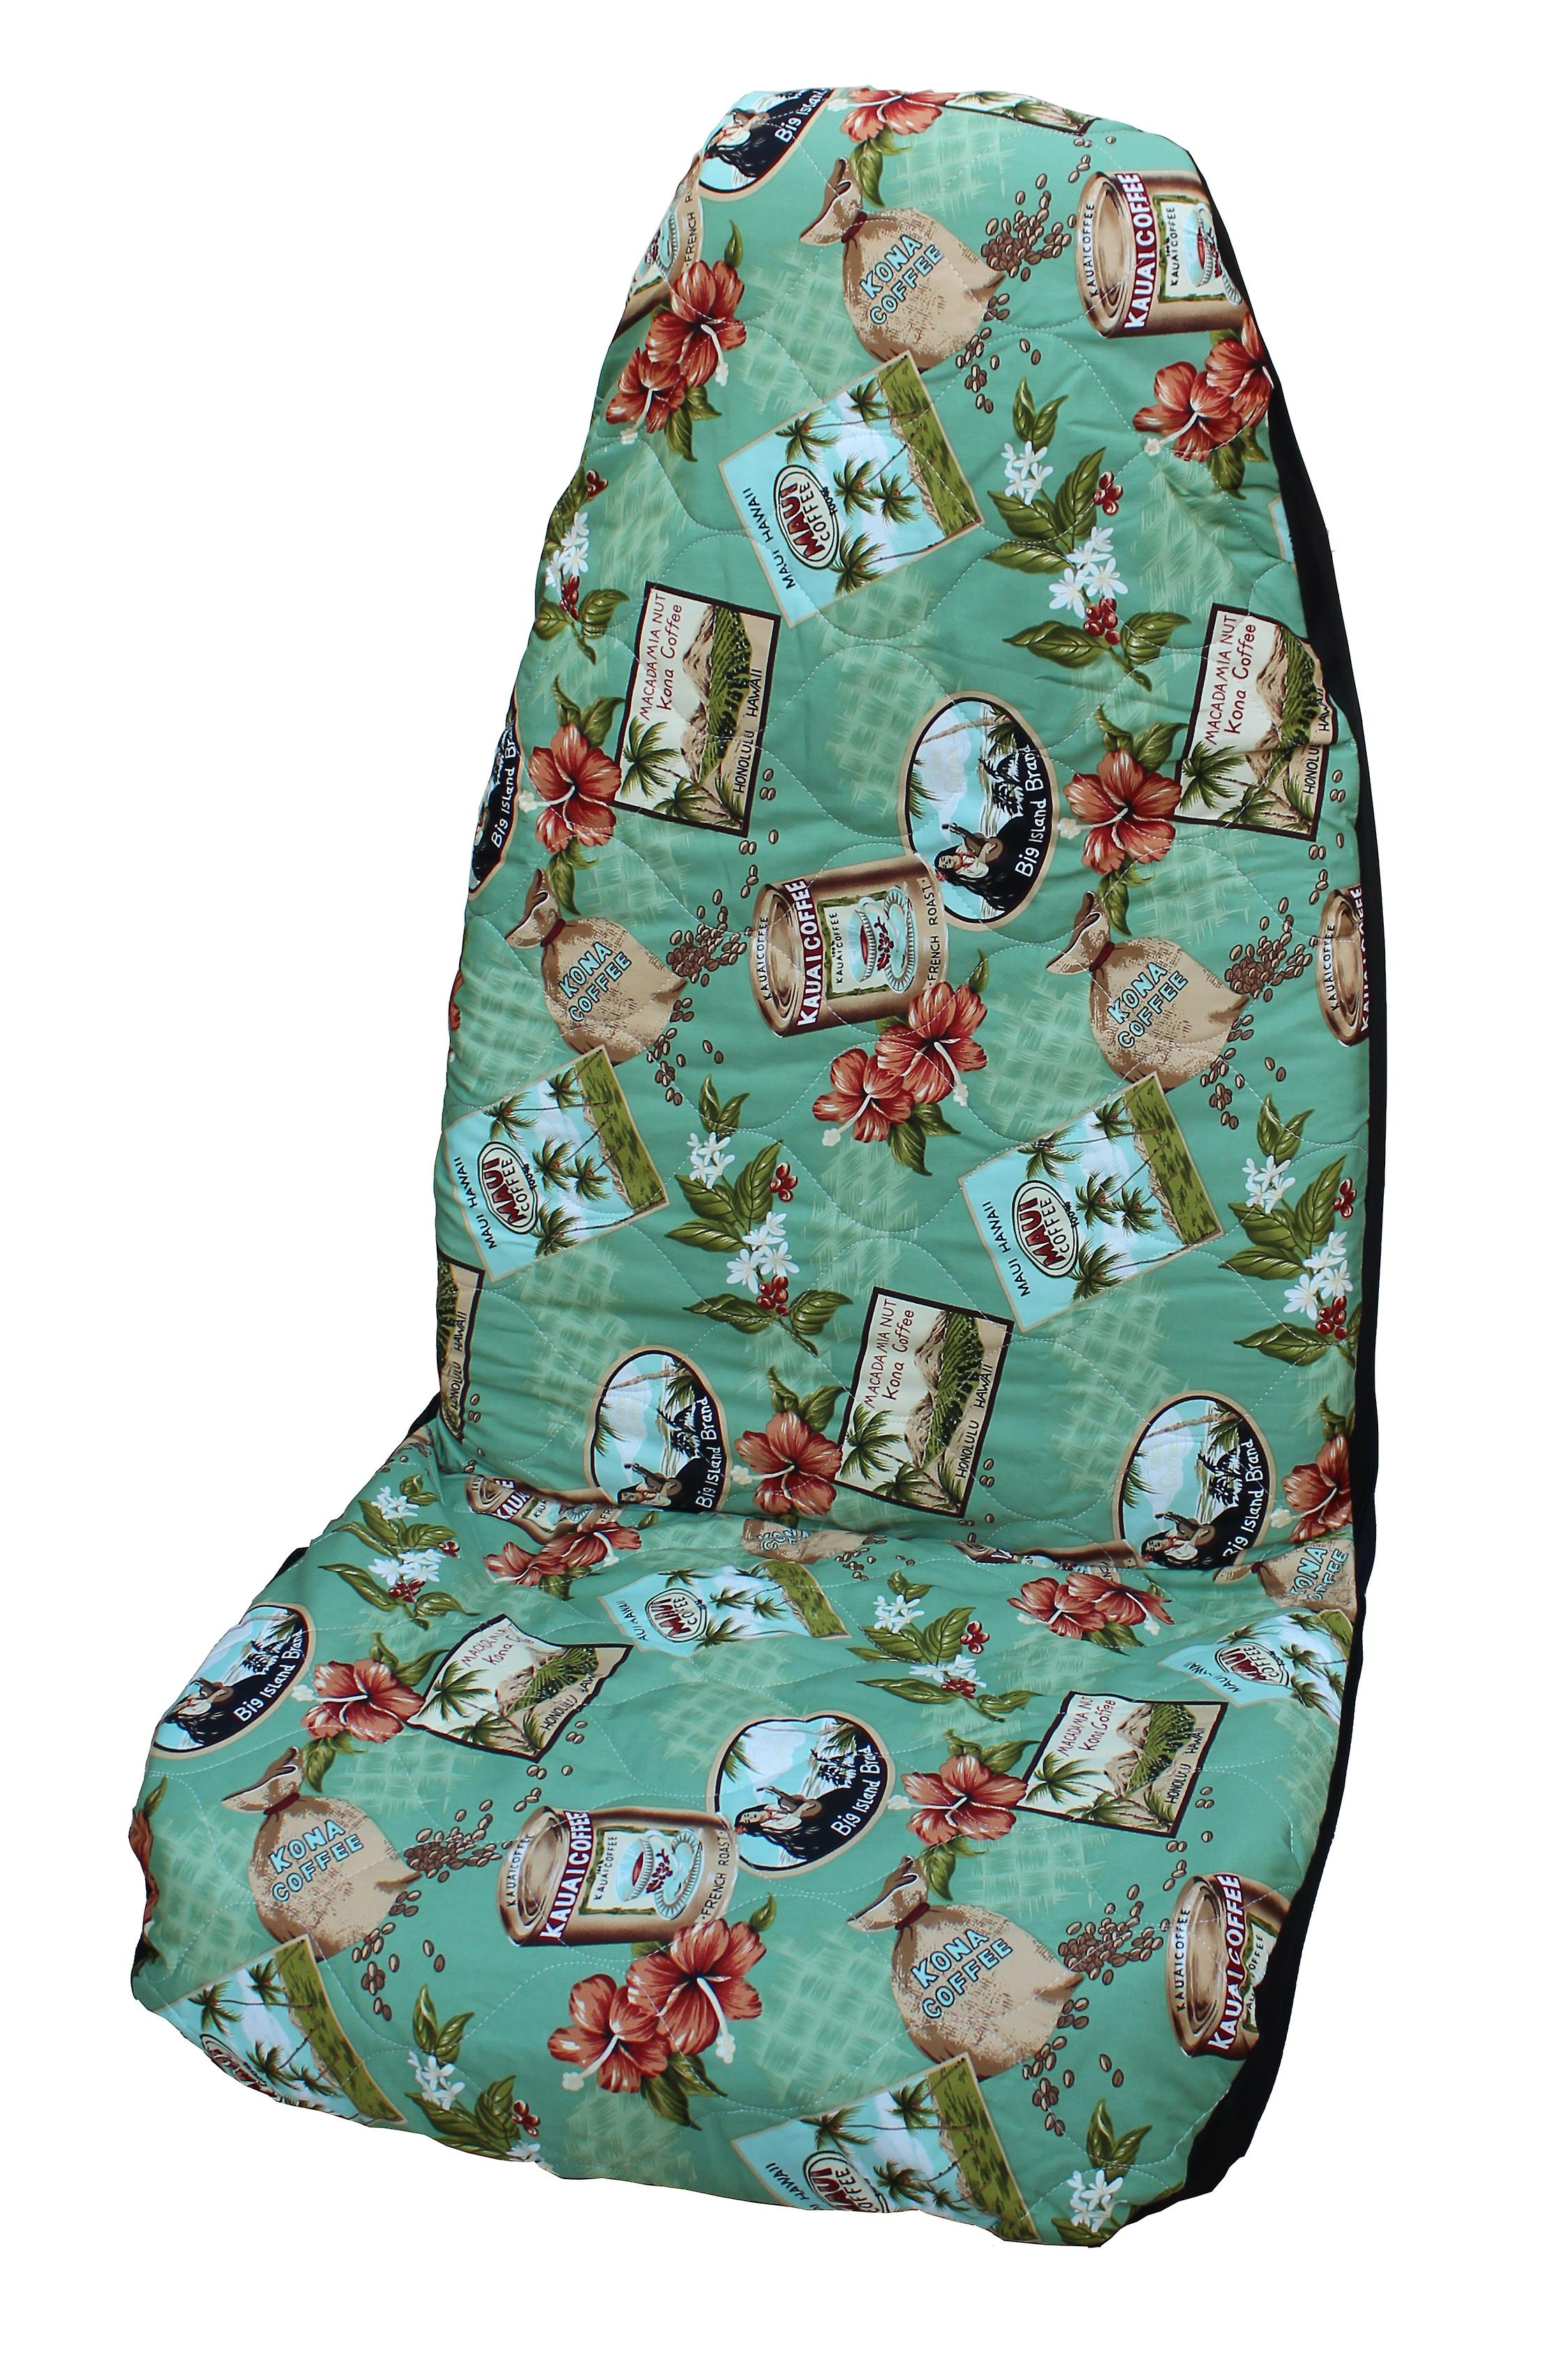 Hawaiian Car Seat Covers >> Side Airbag Optional Kona Coffee Hawaiian Car Seat Covers